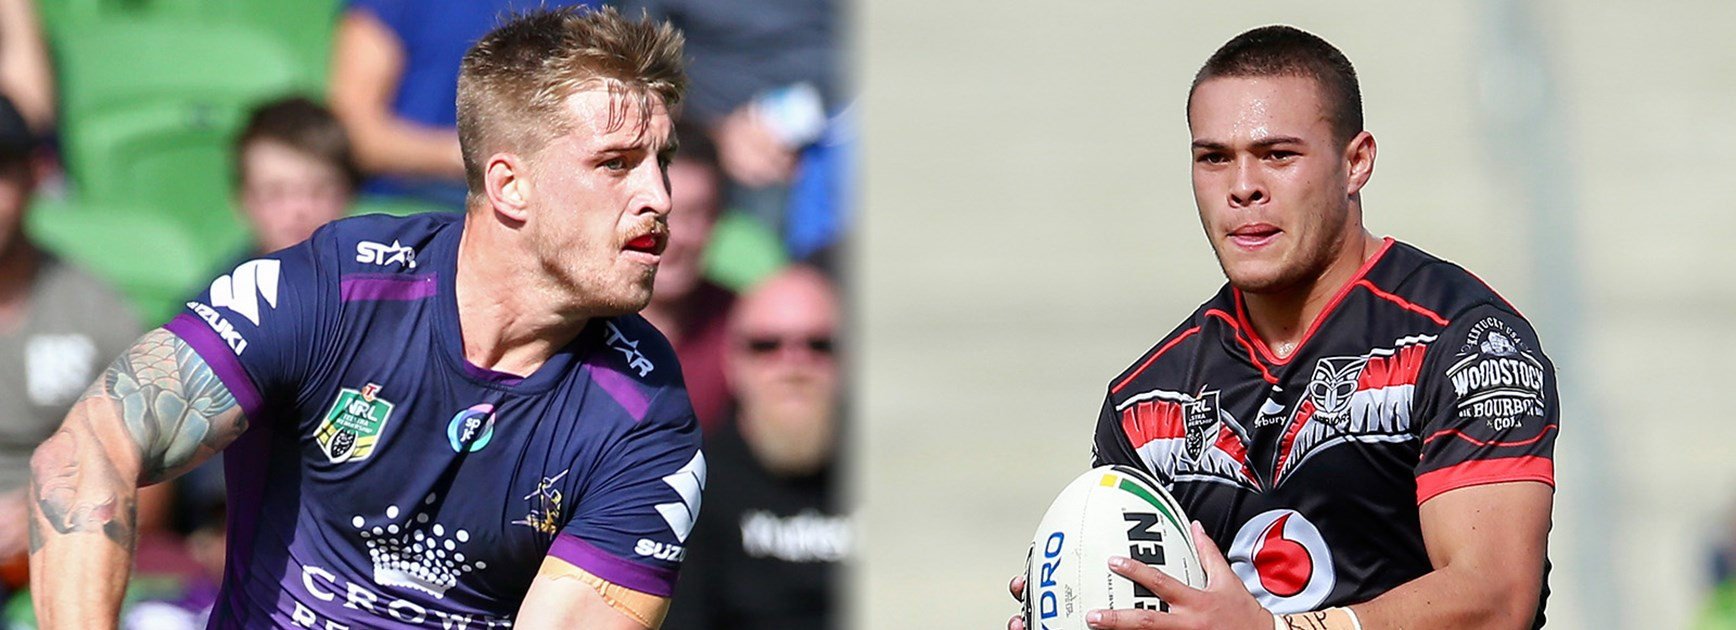 Cameron Munster and Tui Lolohea are both at fullback replacing superstars in their respective teams.